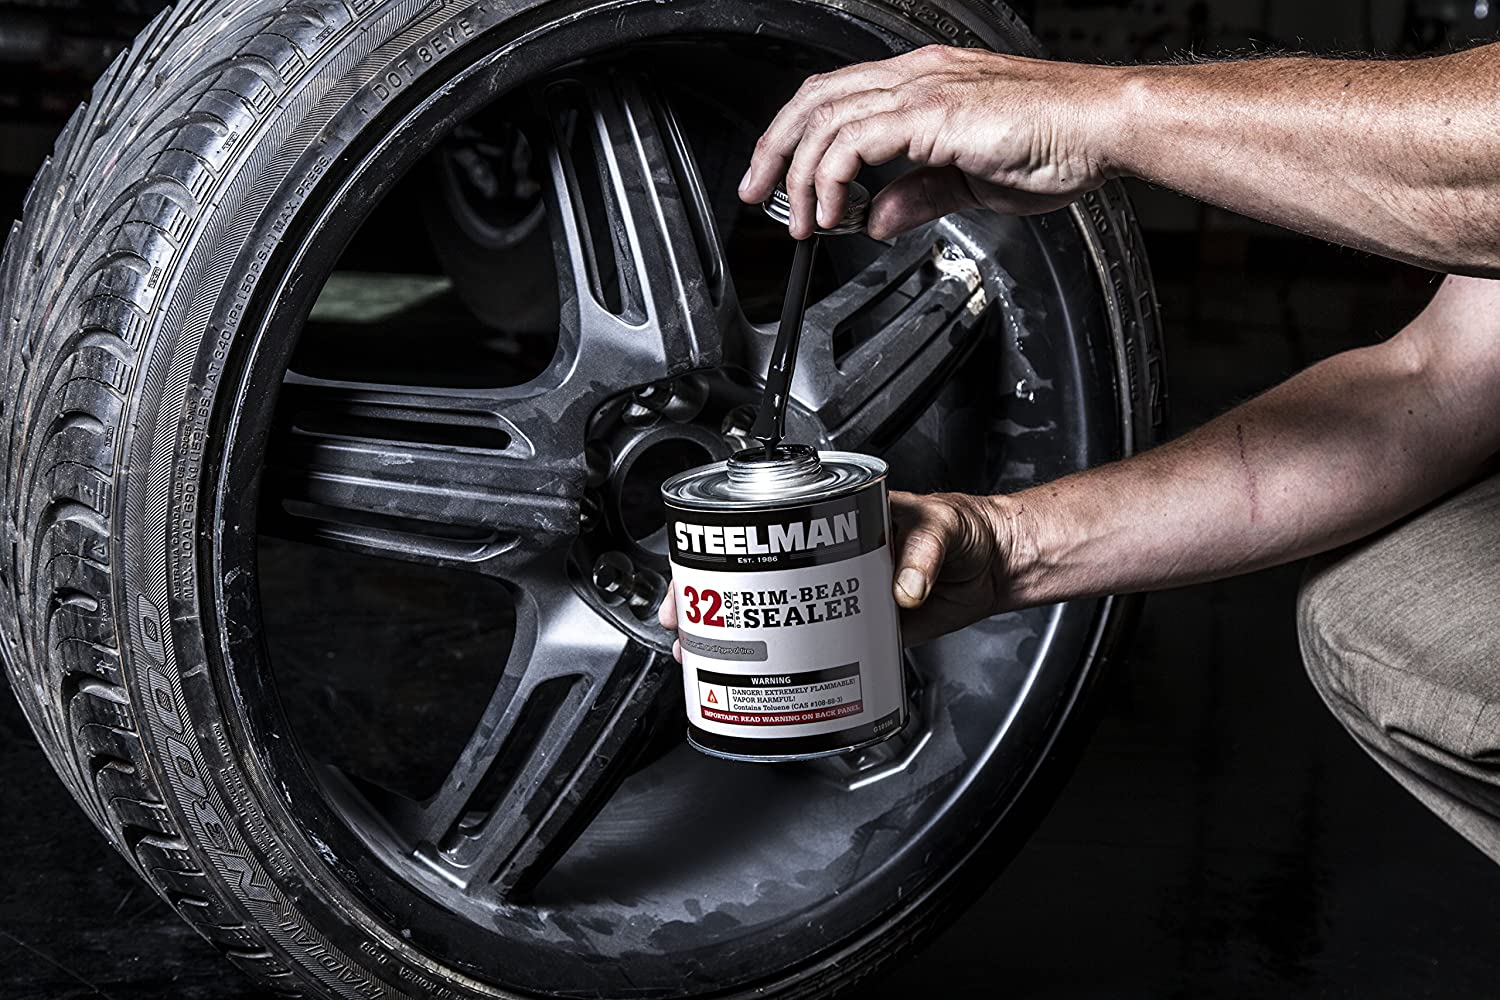 3 x Patch Rubber Tyre Bead Sealer Seal Leaks Between Tyre And Rim